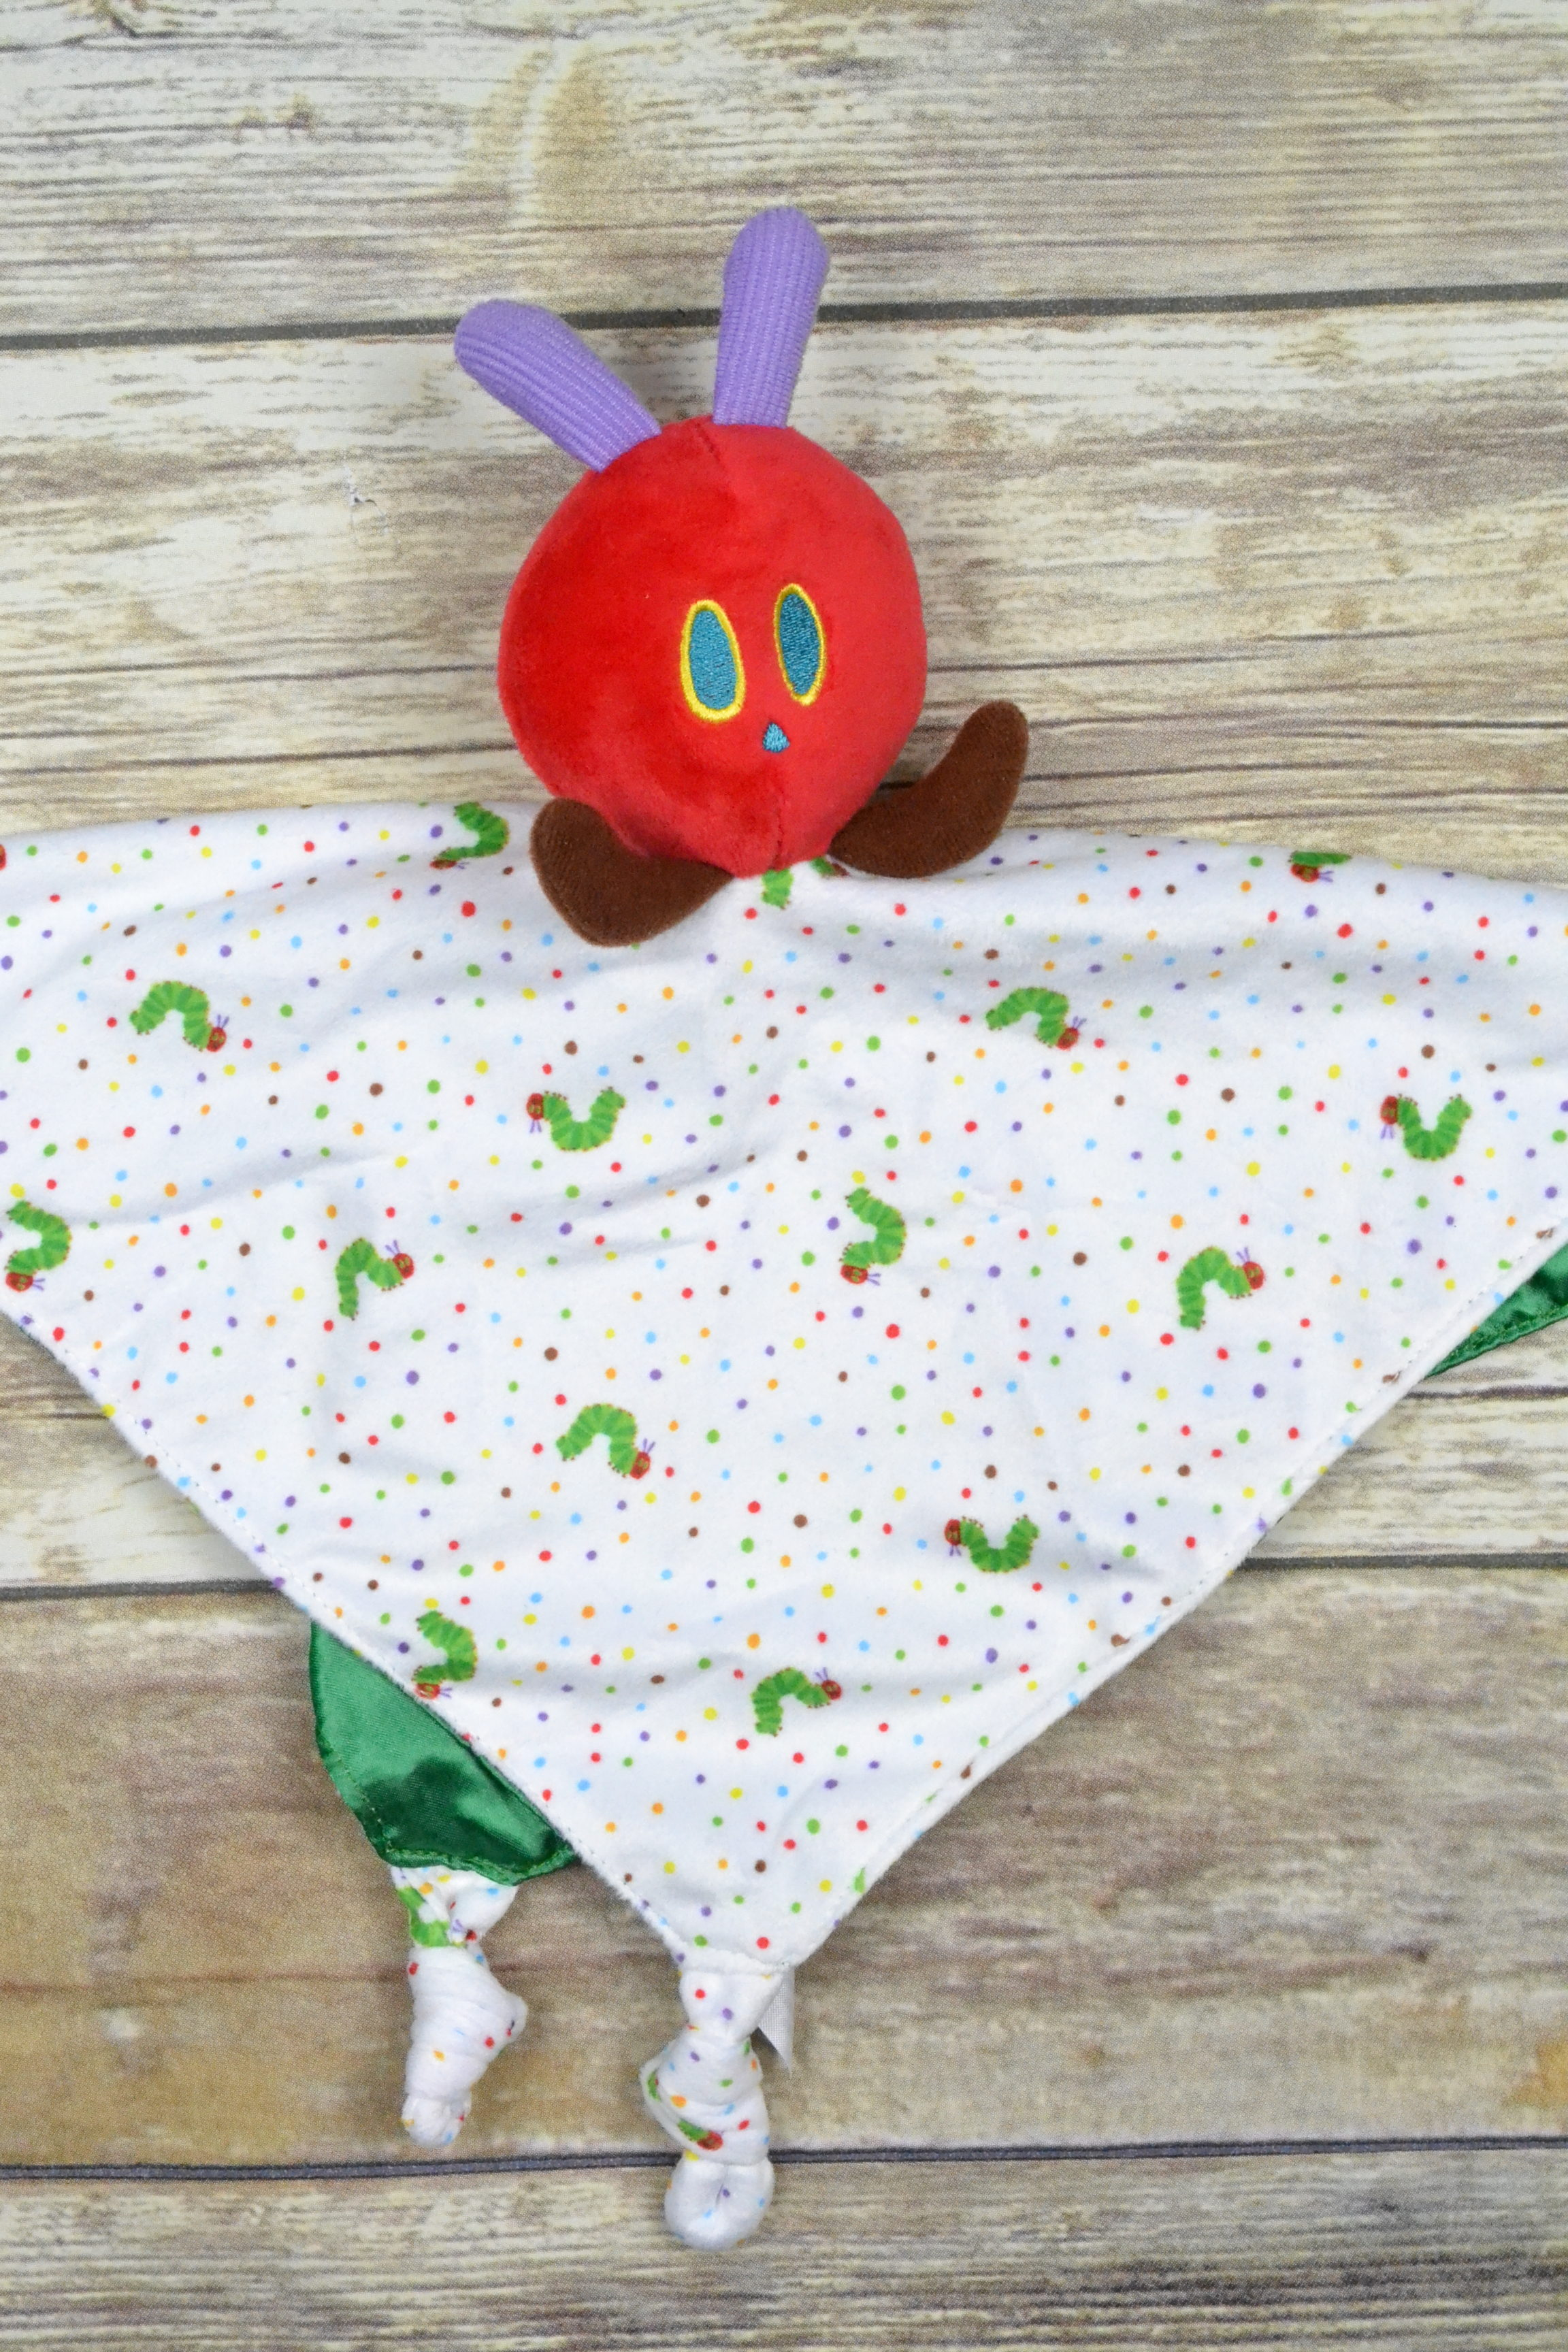 The Hungry Caterpillar Baby Comfort Blanket